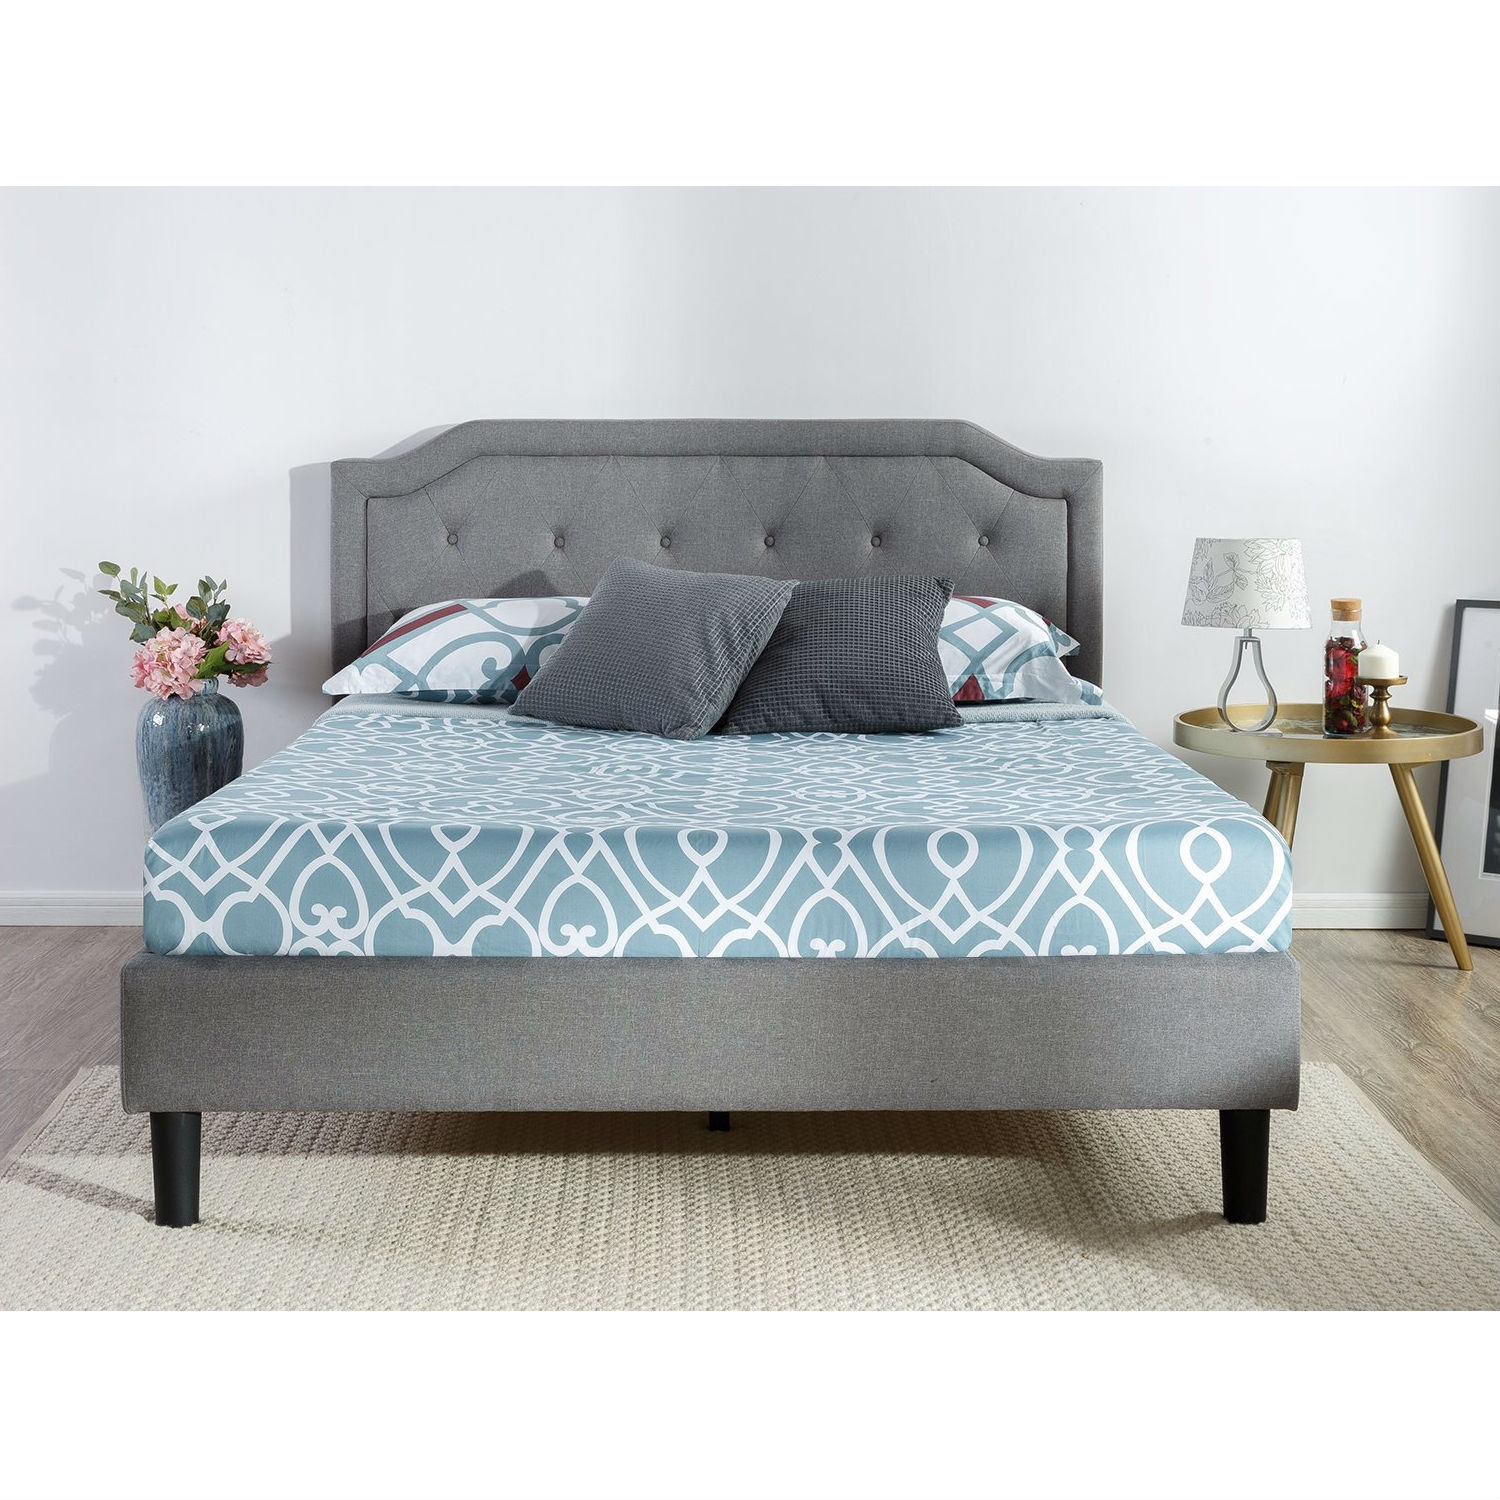 Full Size Grey Upholstered Platform Bed With Clic On Tufted Headboard